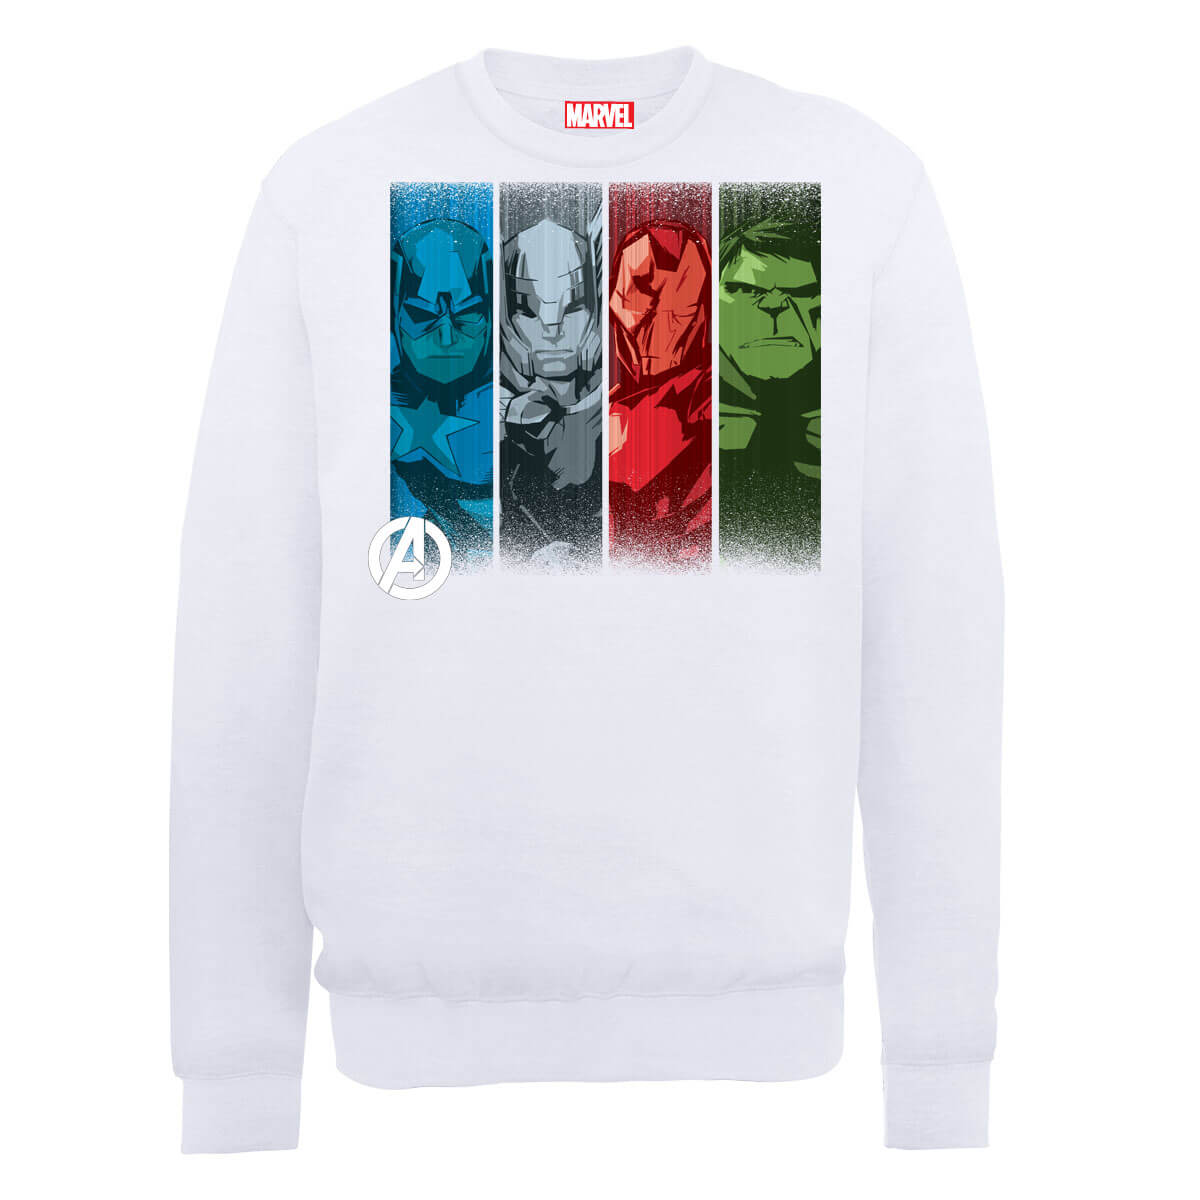 Marvel Avengers Assemble Team Poses Sweatshirt - White